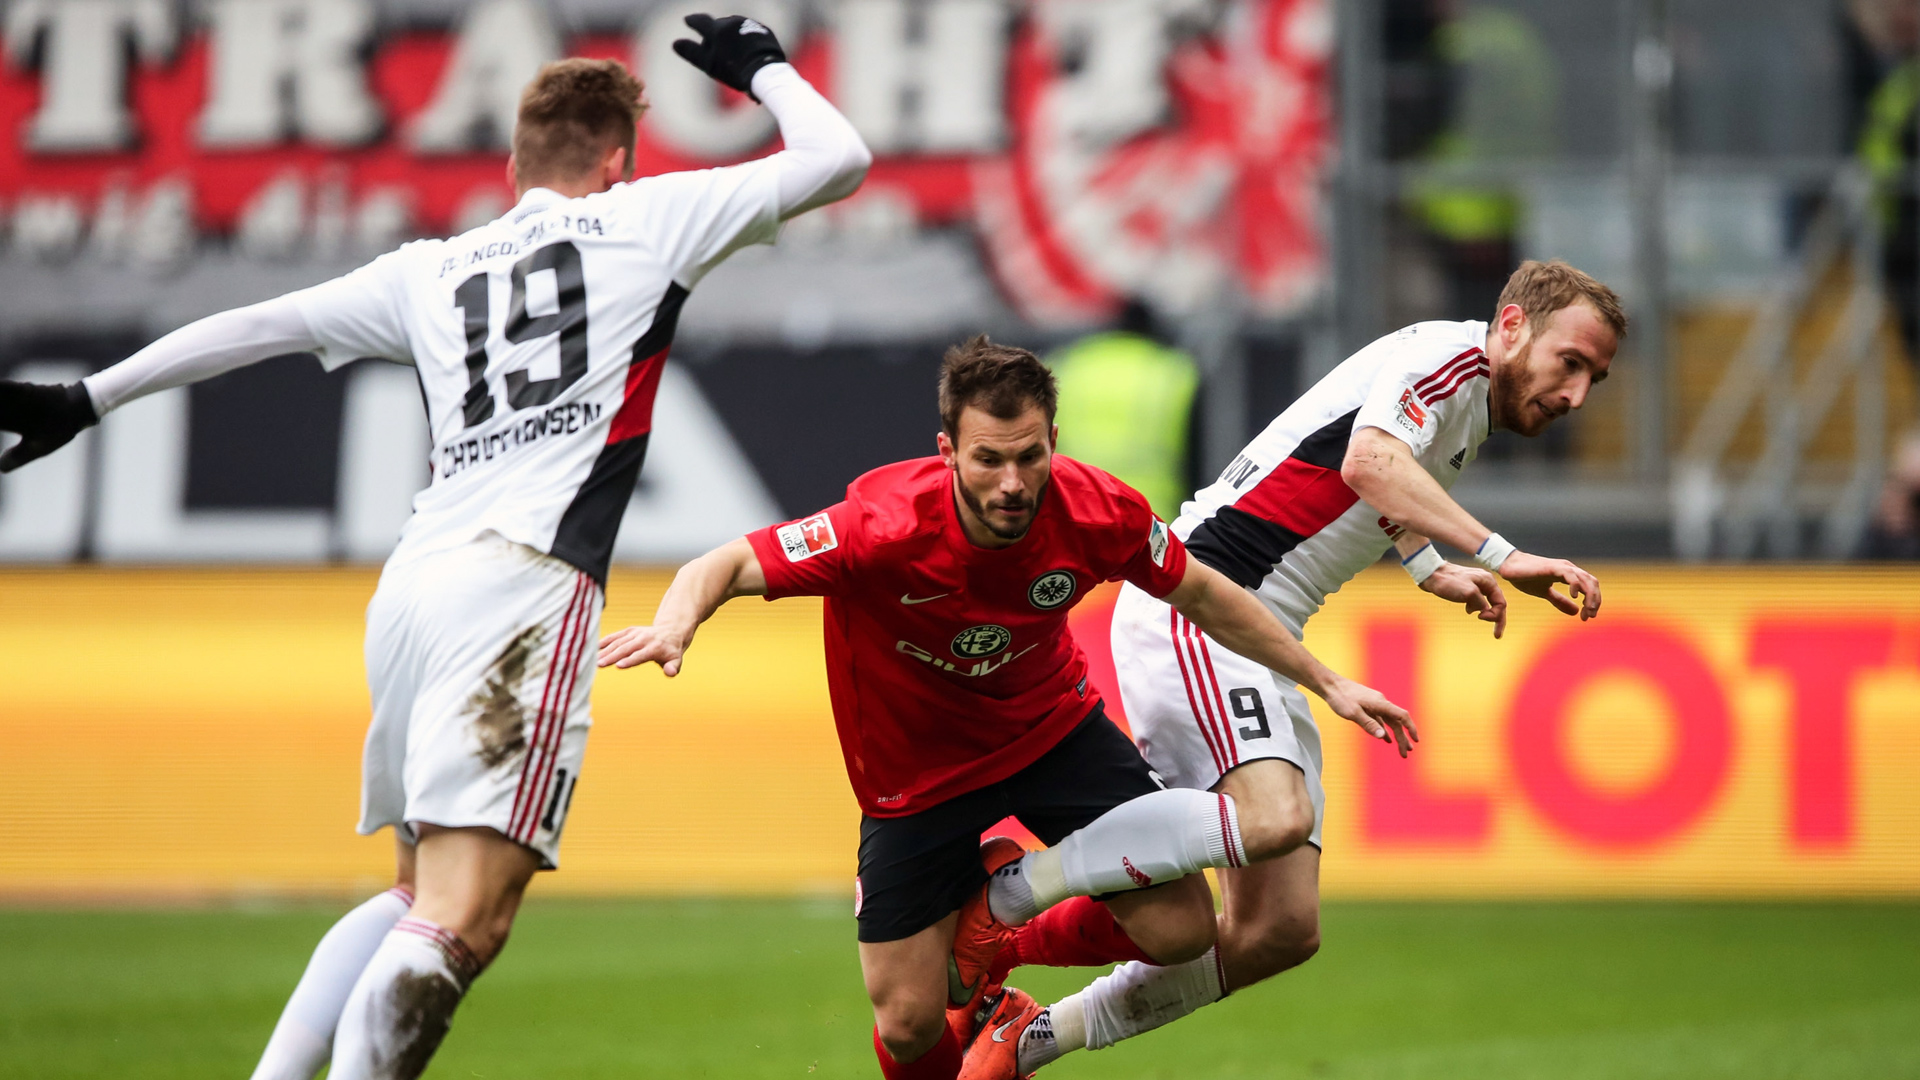 Video: Eintracht Frankfurt vs Ingolstadt